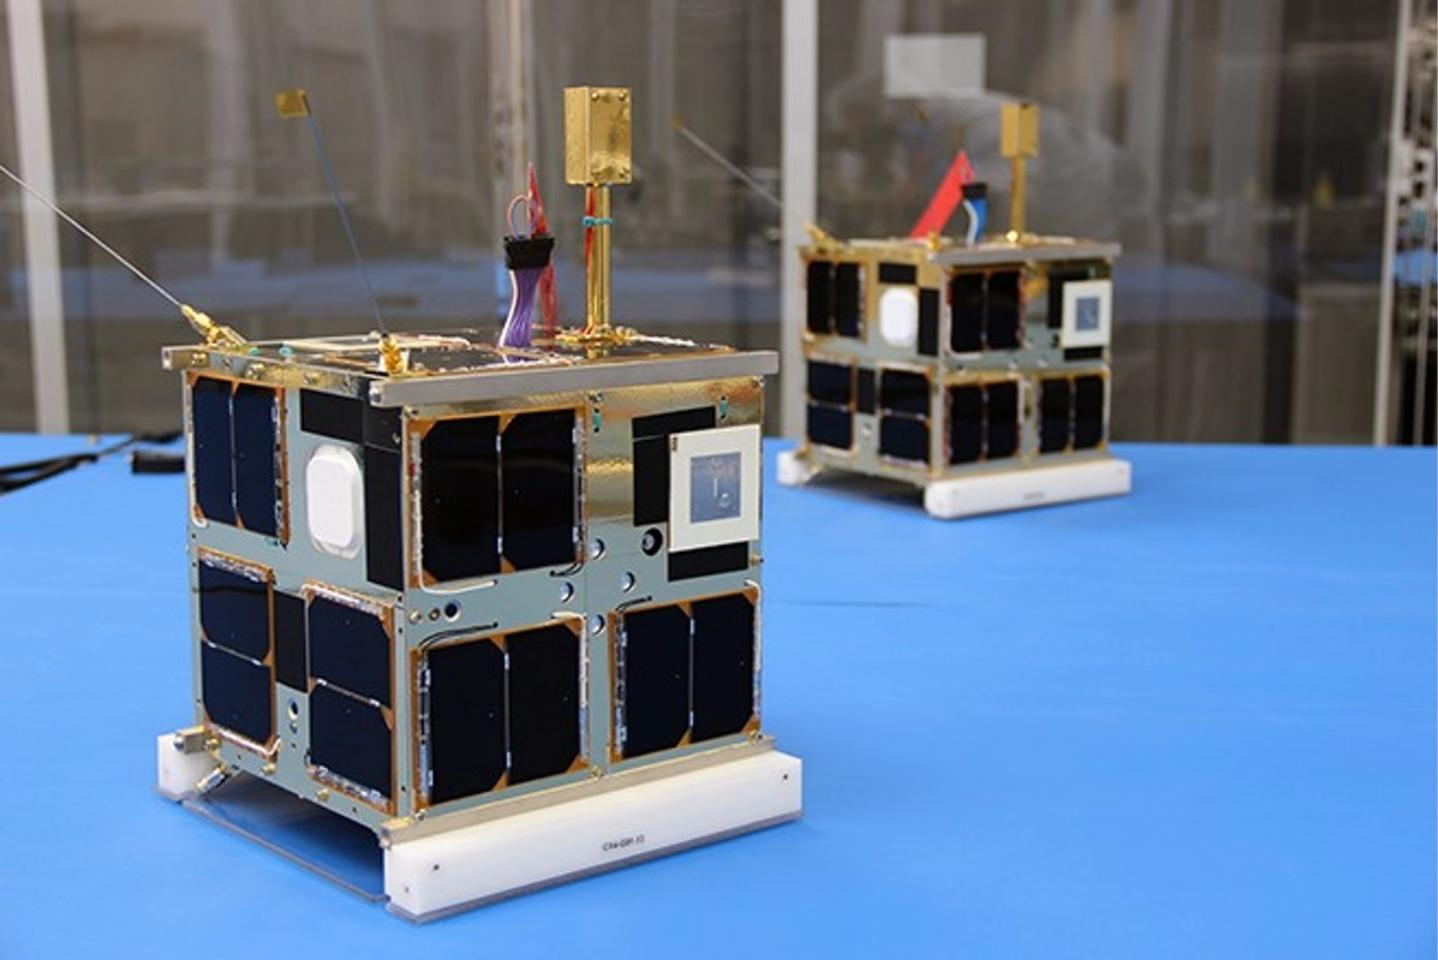 CanX-4 and CanX-5 are a pair of identical nanosatellites built by the Space Flight Laboratory and launched in June 2014